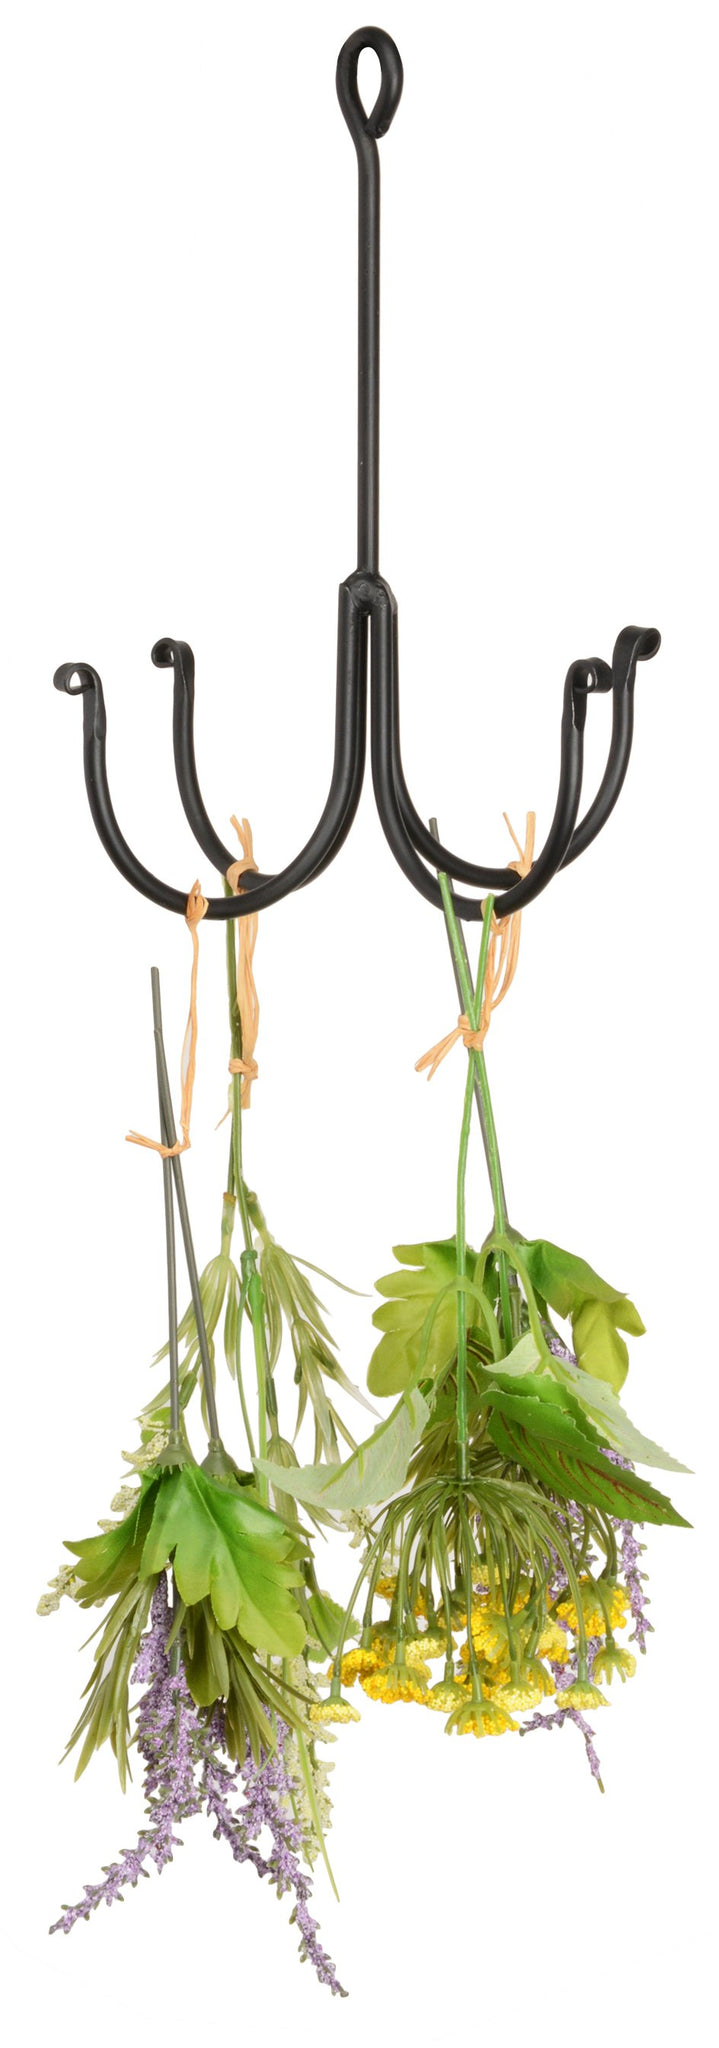 WROUGHT IRON HERB HOOK Primitive Hand Forged Drying Rack